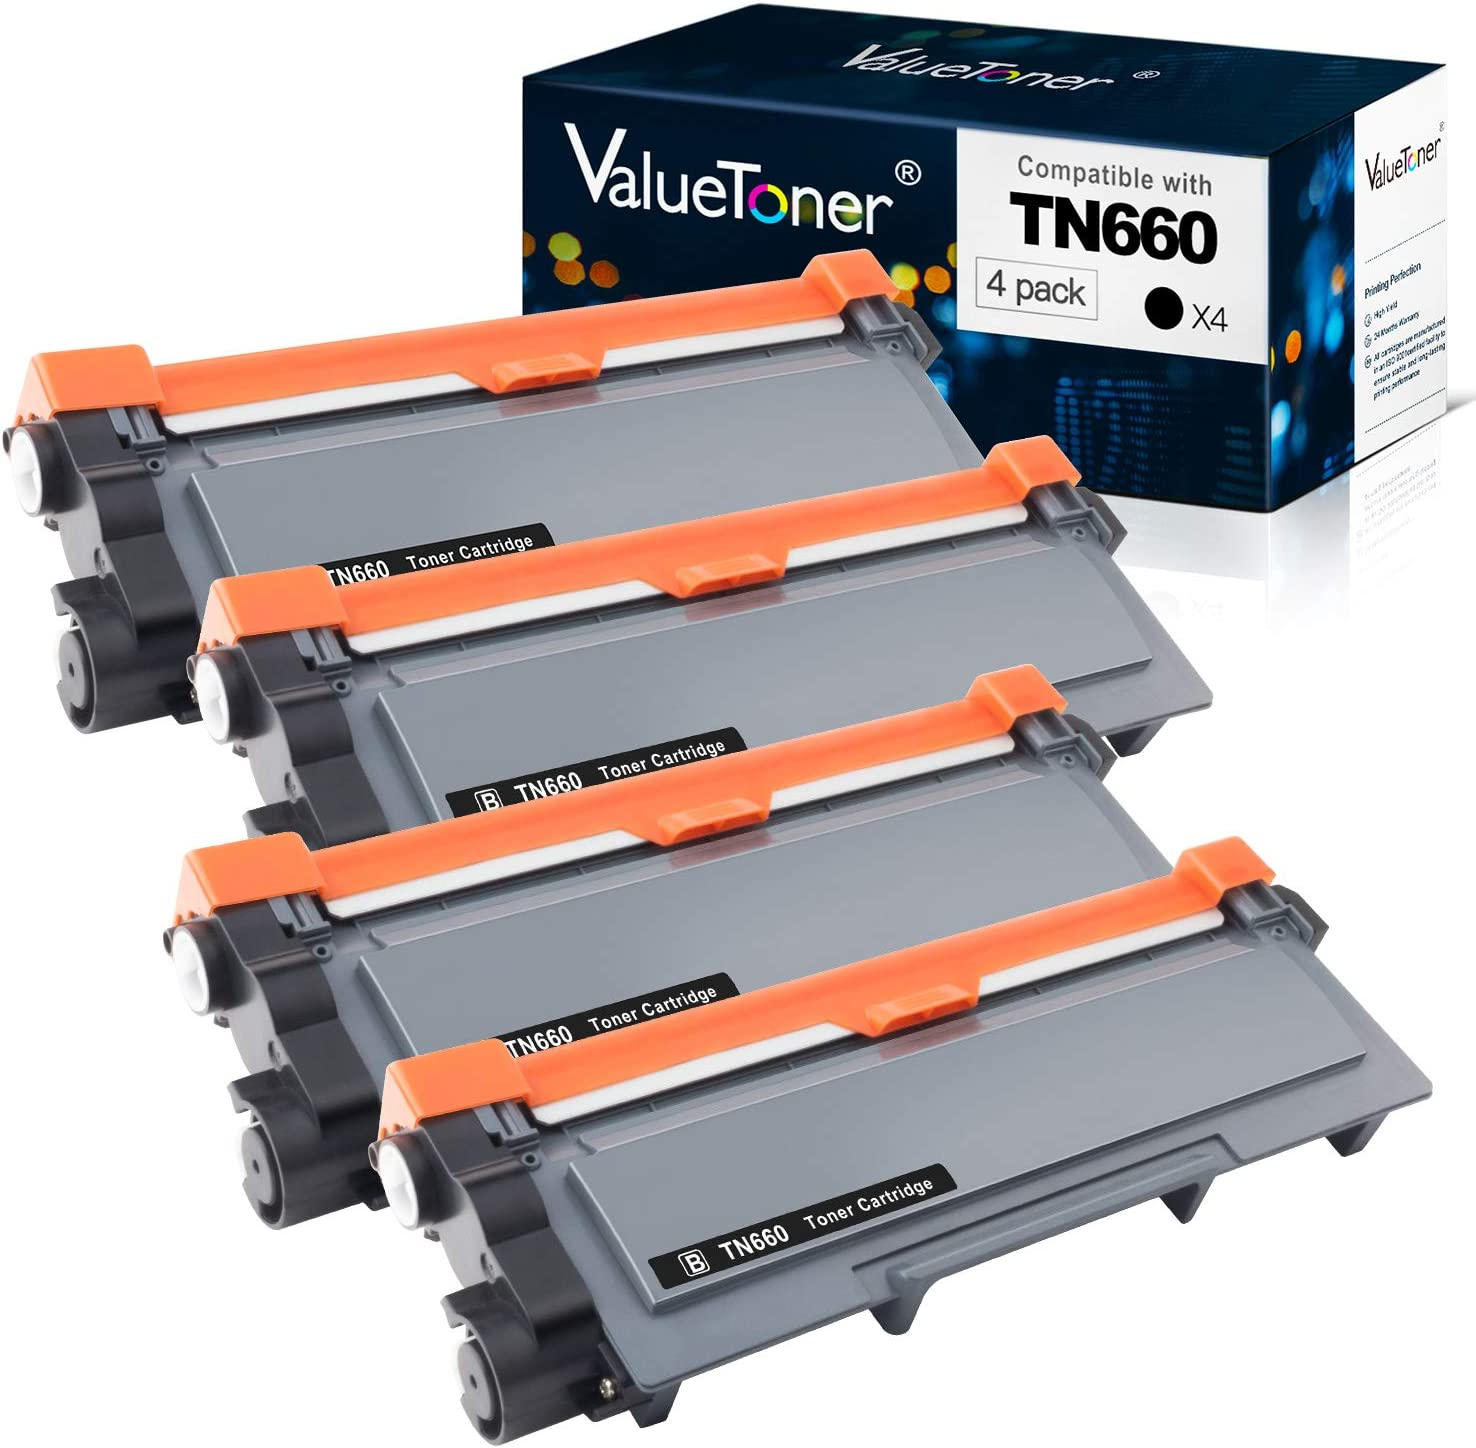 Valuetoner Compatible Toner Cartridge Replacement for Brother TN660 TN-660 TN630 TN-630 High Yield to use with HL-L2300D HL-L2320D HL-L2340DW HL-L2360DW MFC-L2720DW MFC-L2740DW DCP-L2540DW (4 Pack)